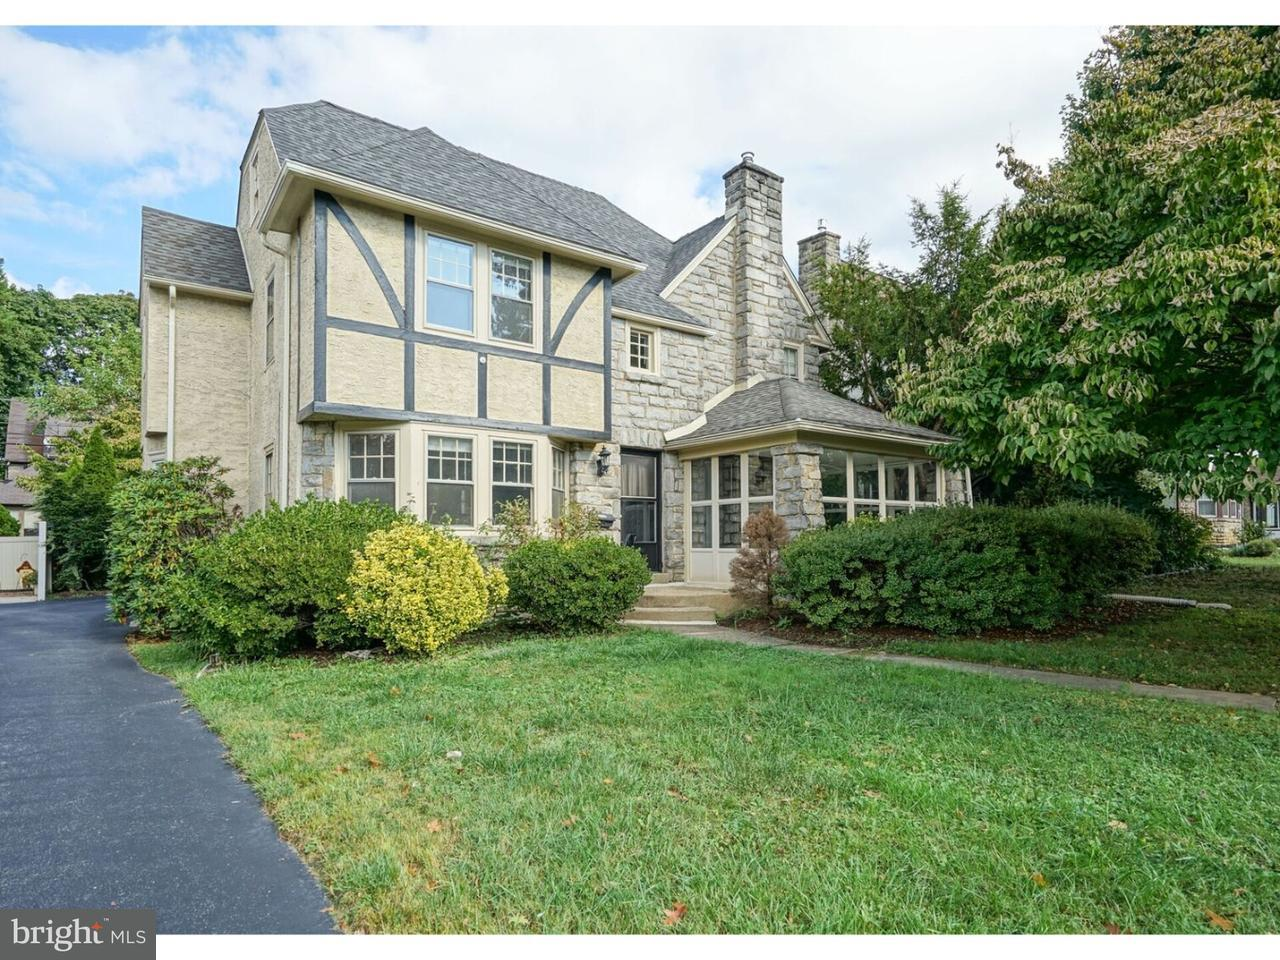 1117  Belfield Drexel Hill , PA 19026